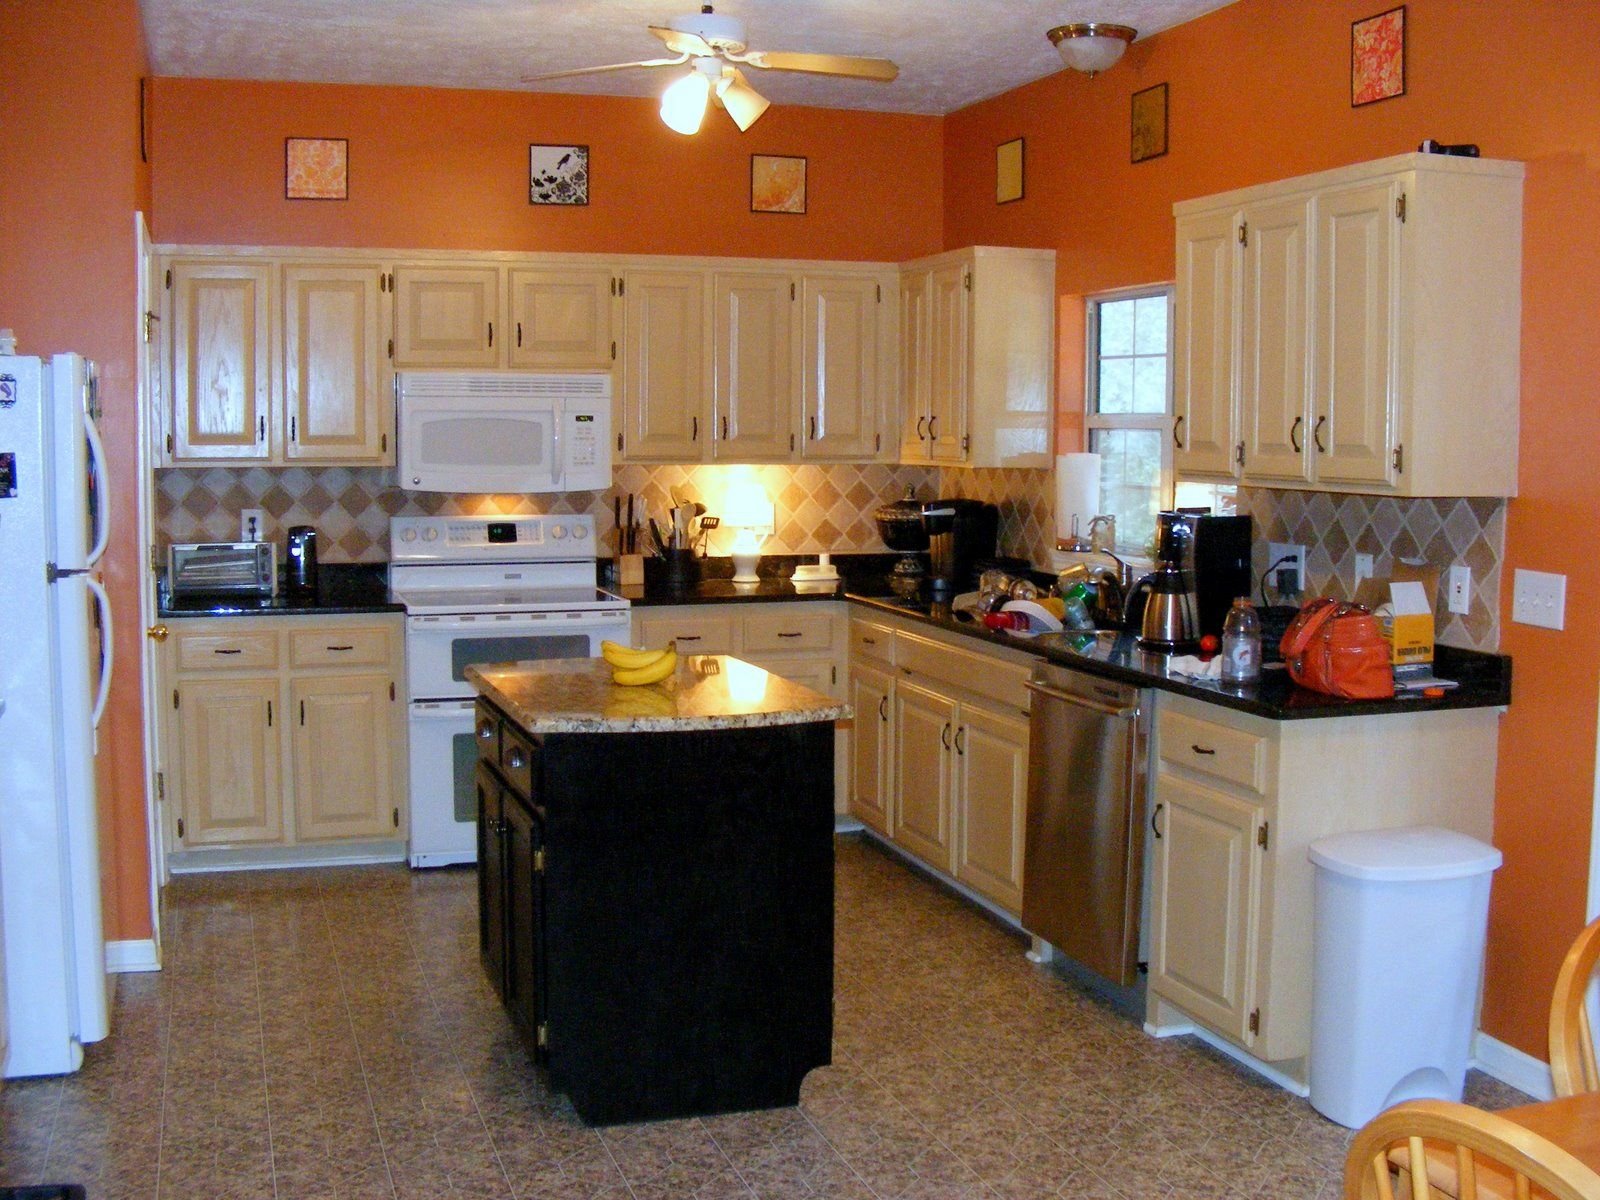 Image Result For Kitchen Color Ideas With Wood Cabinets And White Appliances Orange Kitchen Walls Small Kitchen Colors Kitchen Design